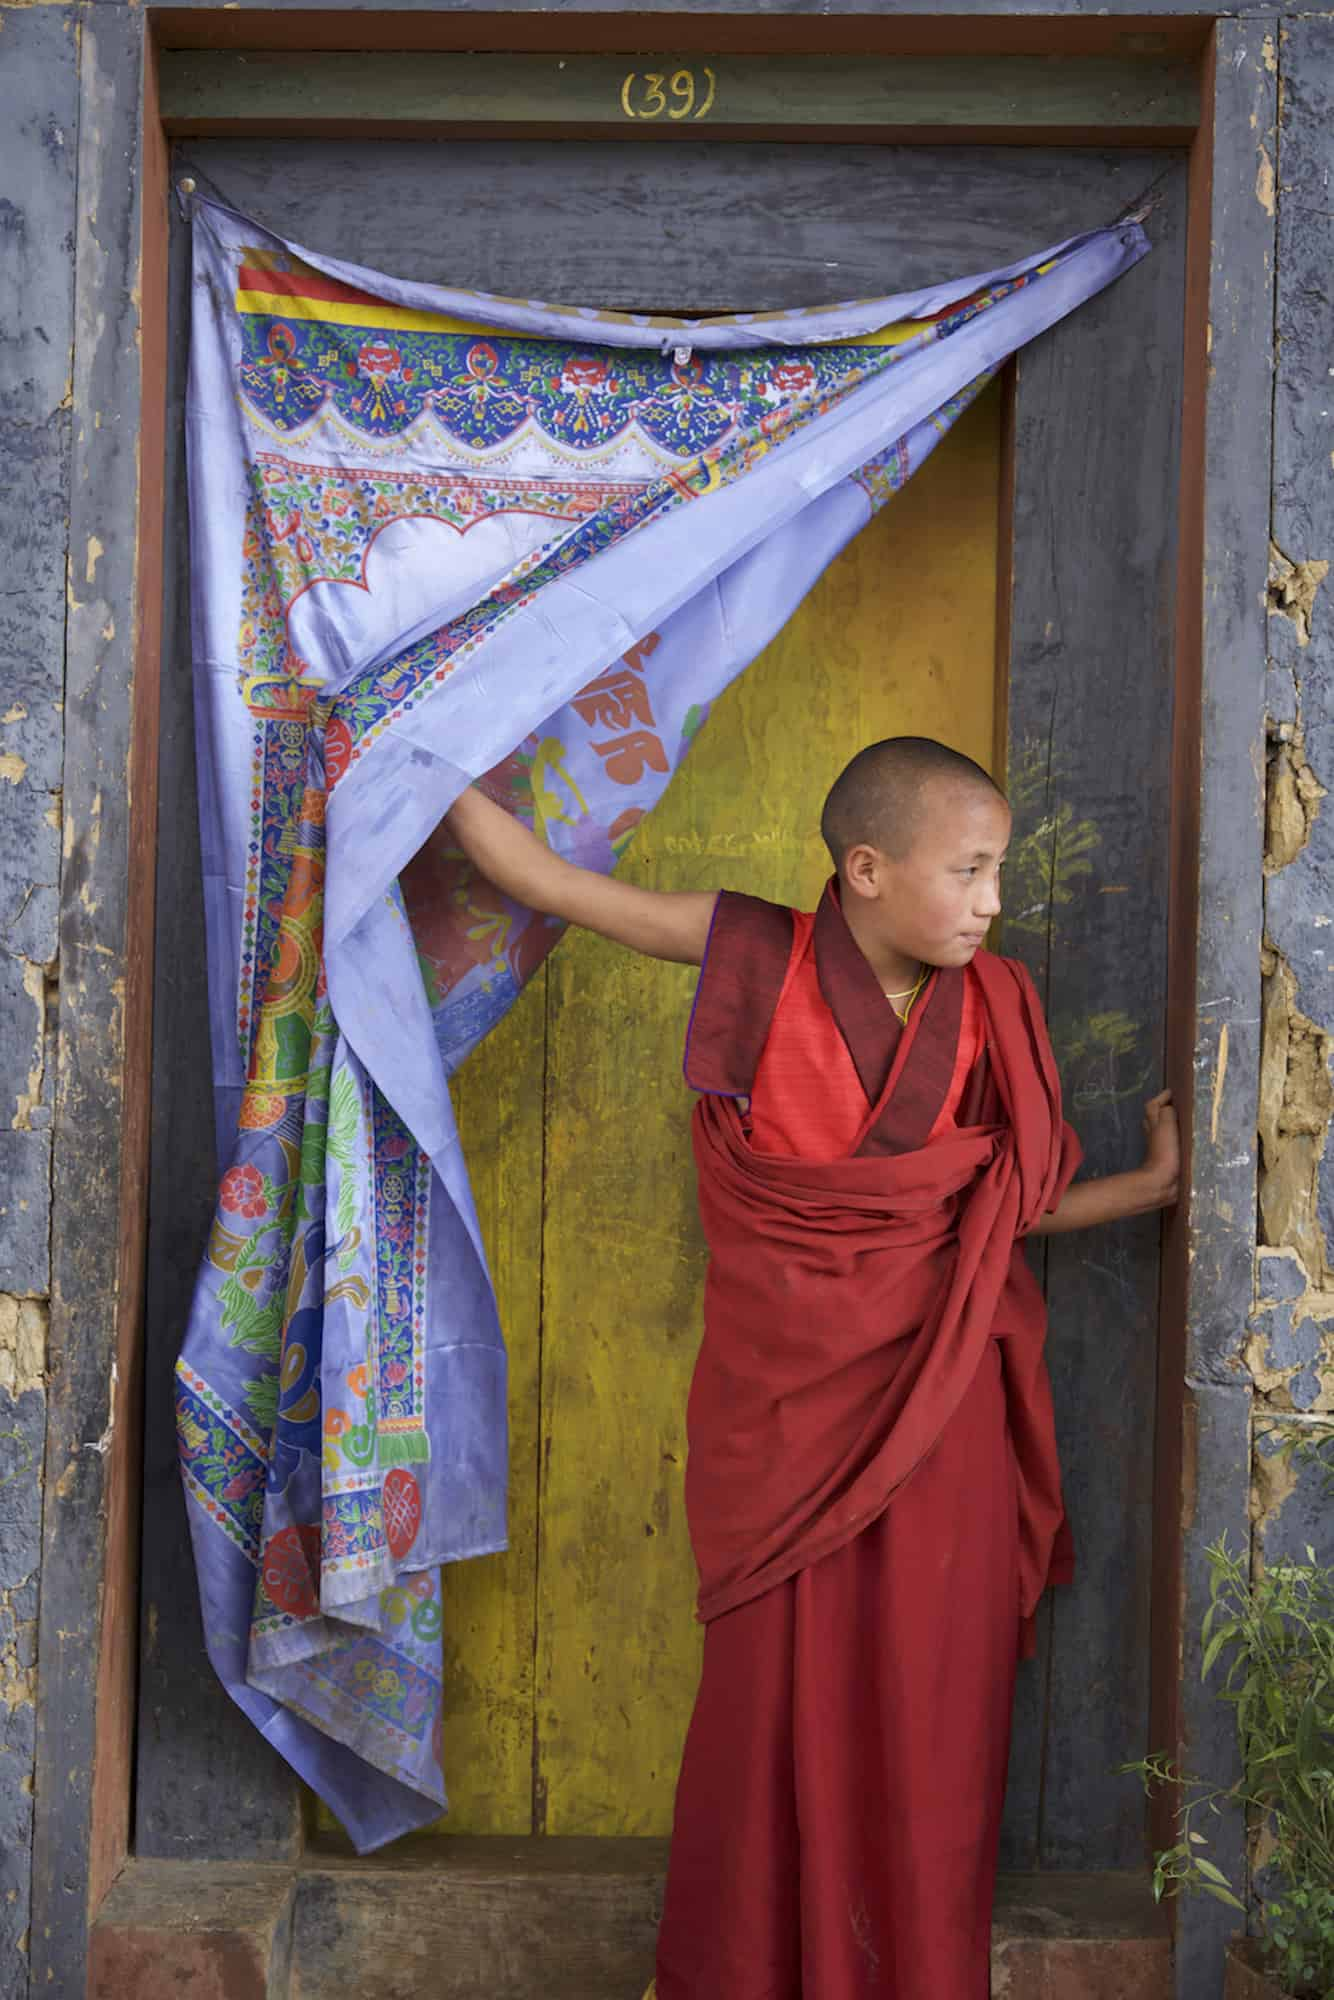 Photograph of a young monk in Bhutan